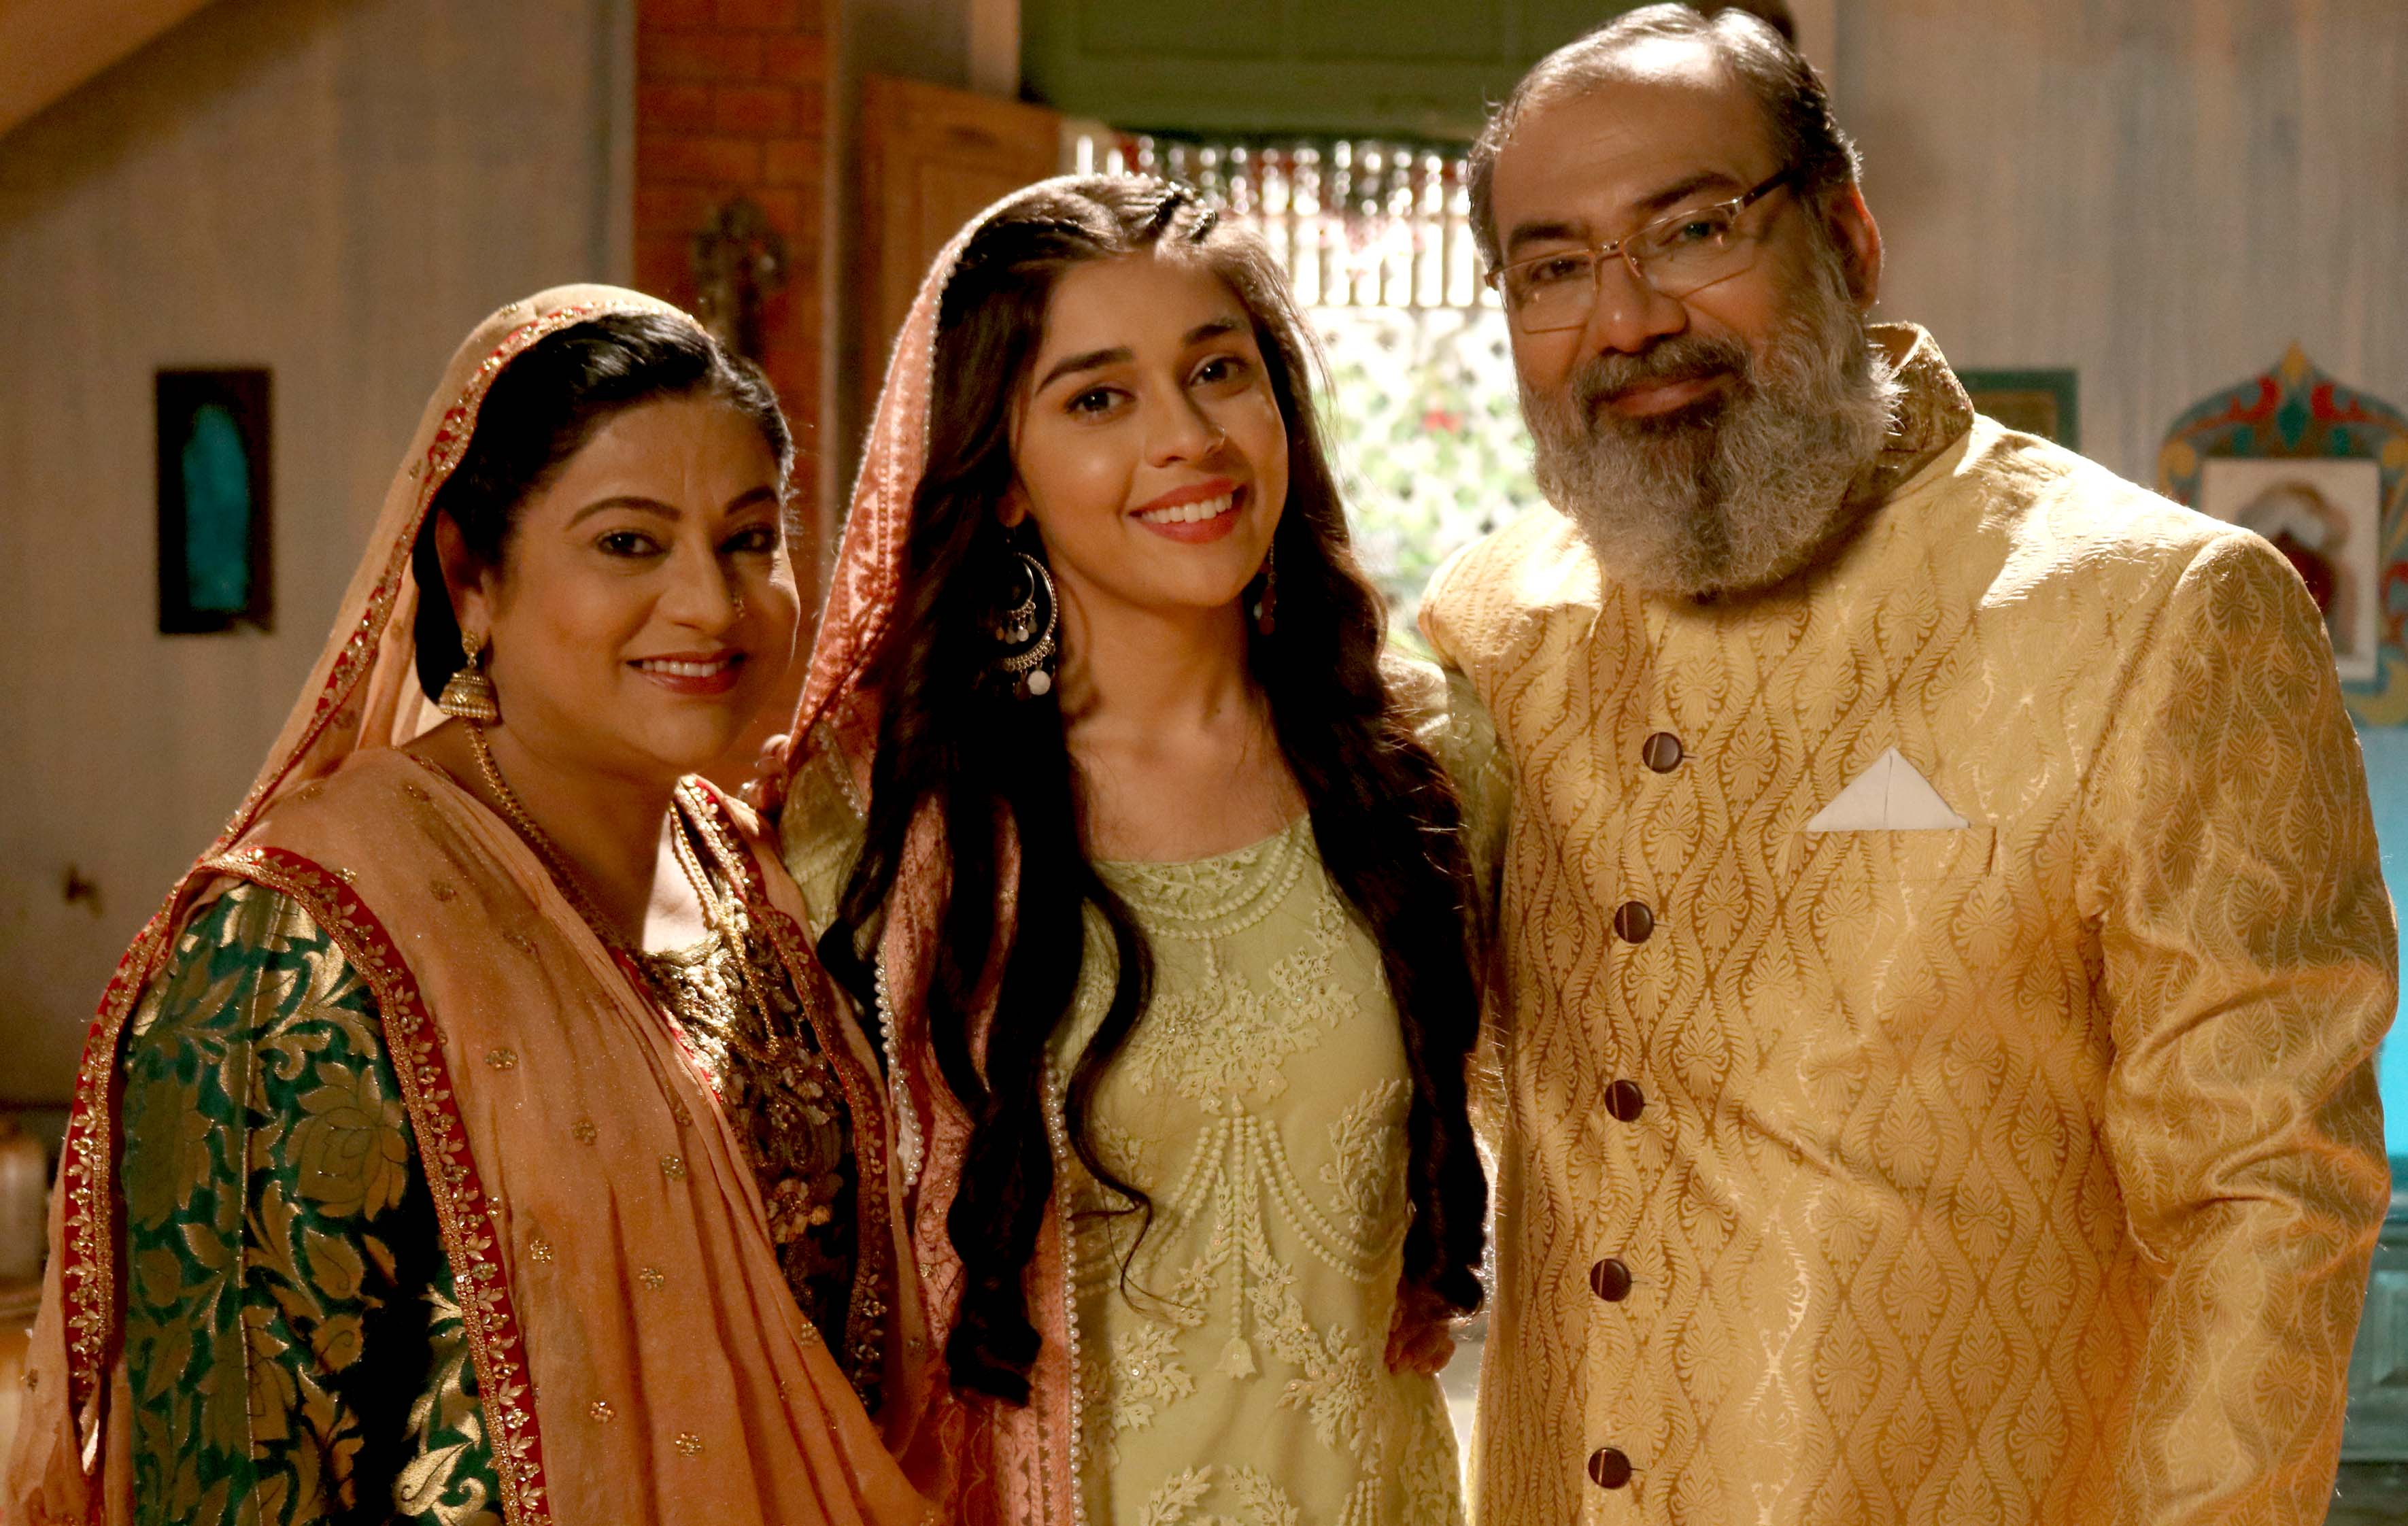 Lots of twist and turn in new episodes of serial Ishq Subhan Allah.